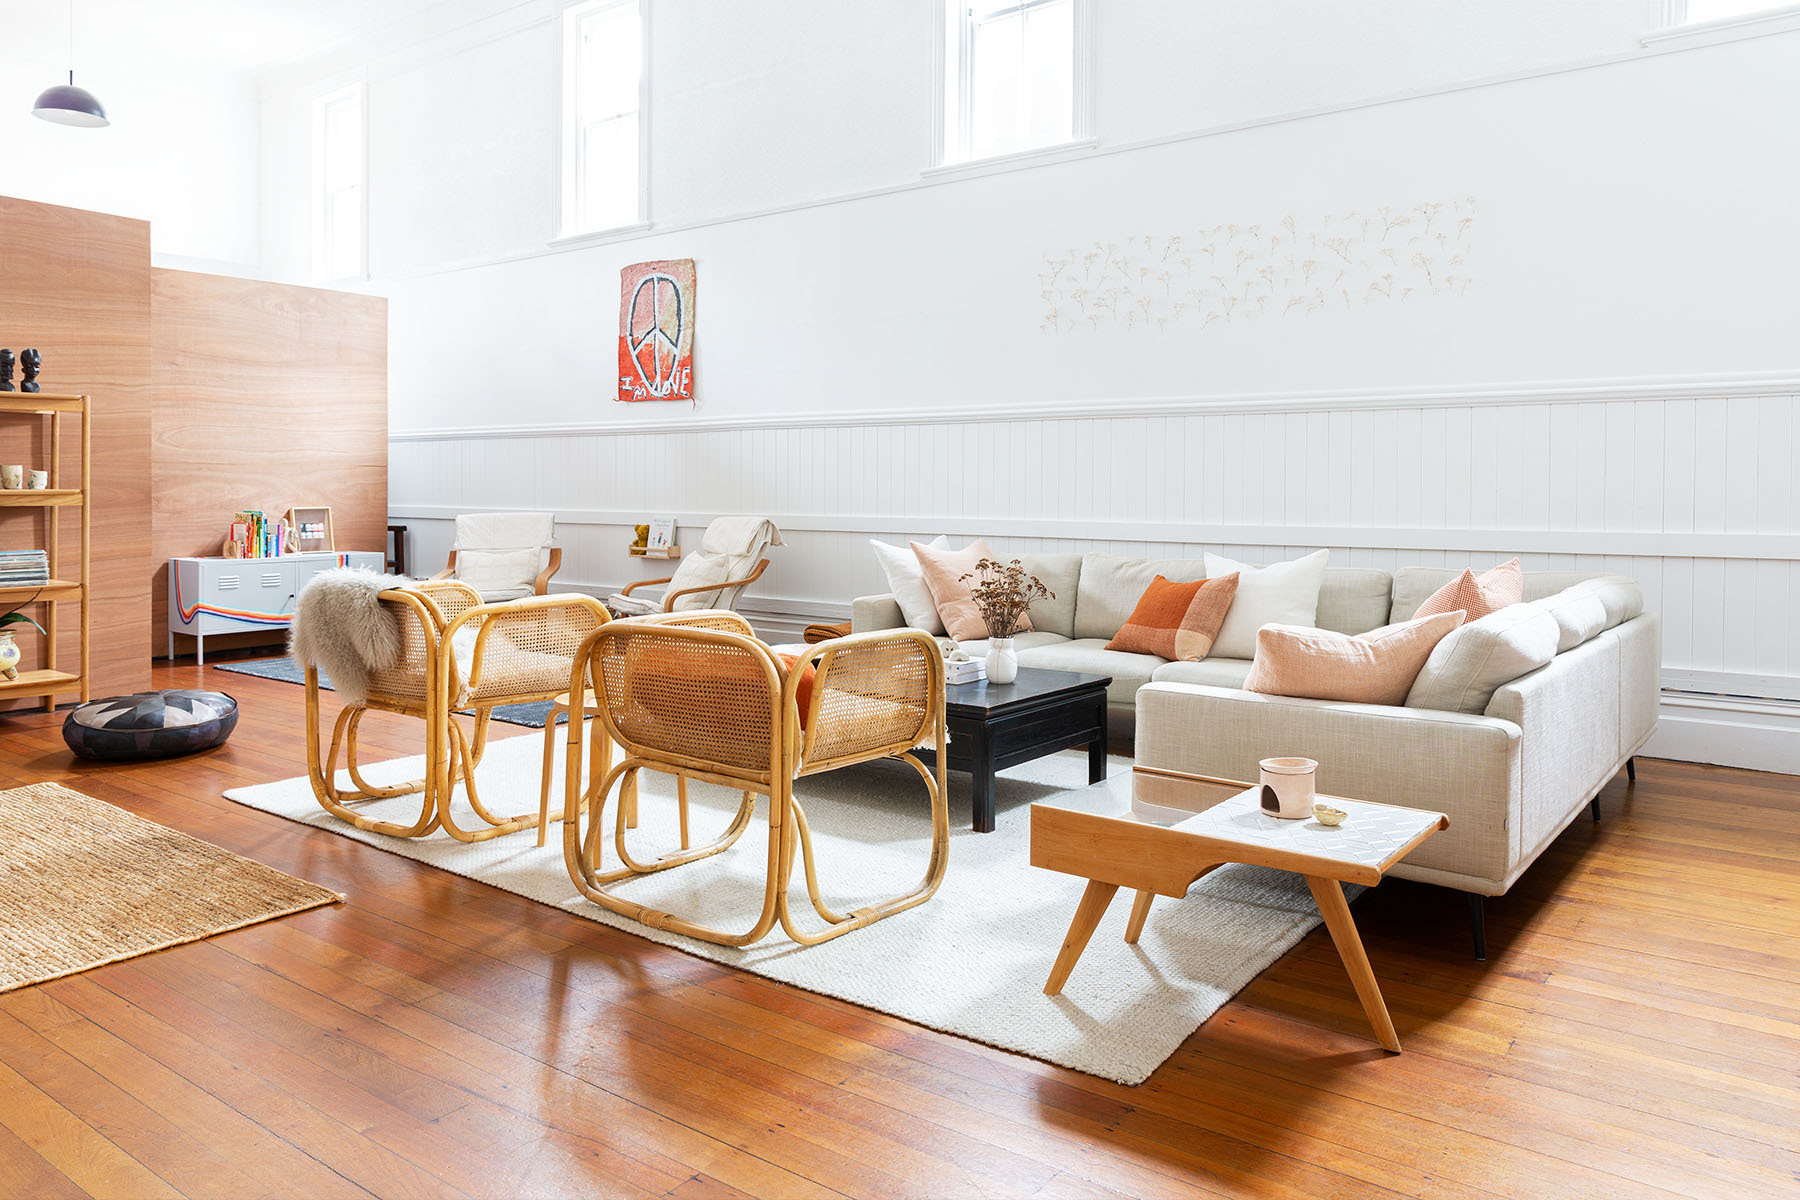 Jessica Britten and fiancé Warren Durling took an old fraternity hall and created a layered family home. BoConcept Sofa | Flooring Xtra Rug | Nodi Jute | McMullin & Co. Armchairs | Città Assorted Pillows | Vintage Turkish Pouf | Vintage Artwork | Bunnings New Zealand Pendant Lights | Flooring Xtra Sheepskin | Nodi Area Rug | Heirloom Armchairs | Heirloom Sculptures | Asili Accent Pieces | Trade Aid, Vintage Toys | Trade Aid Customized Baskets | Vintage Customized Filing Cabinet.